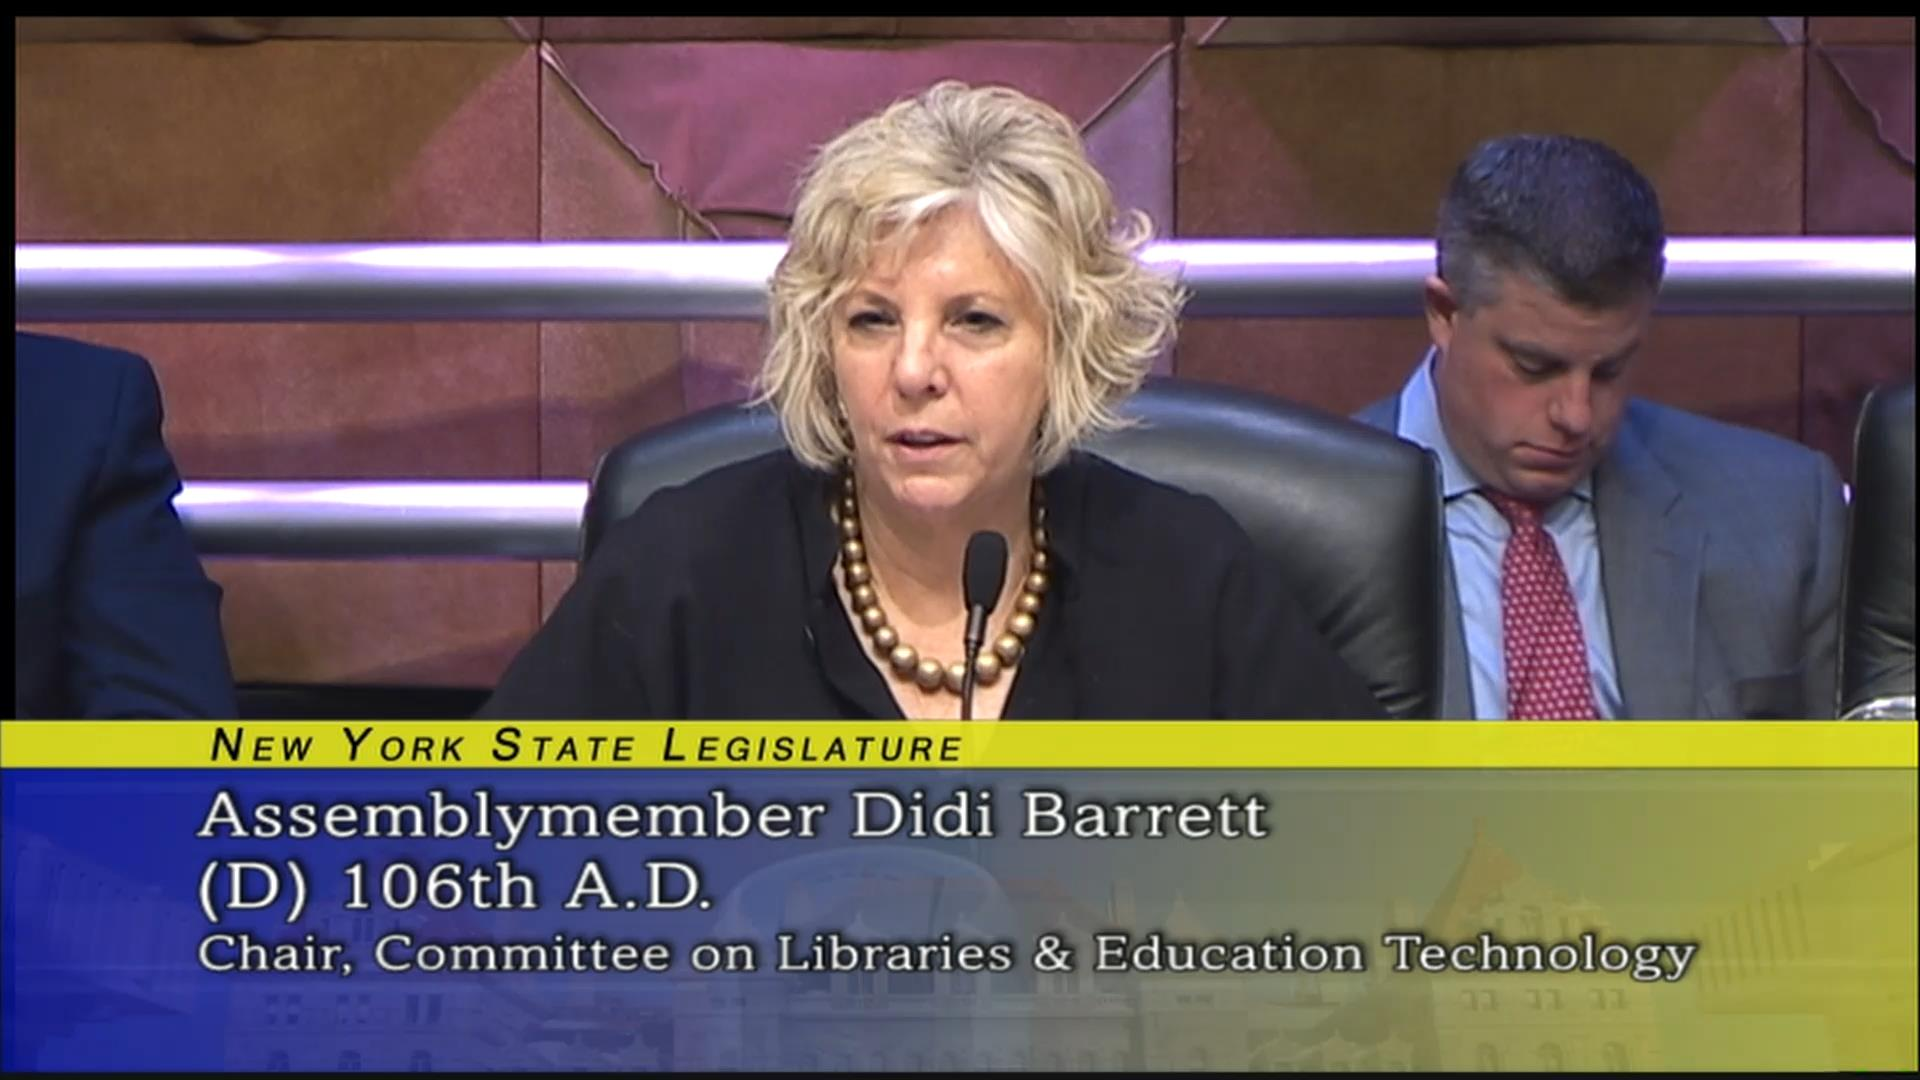 Working to Secure Necessary Library Infrastructure Funding